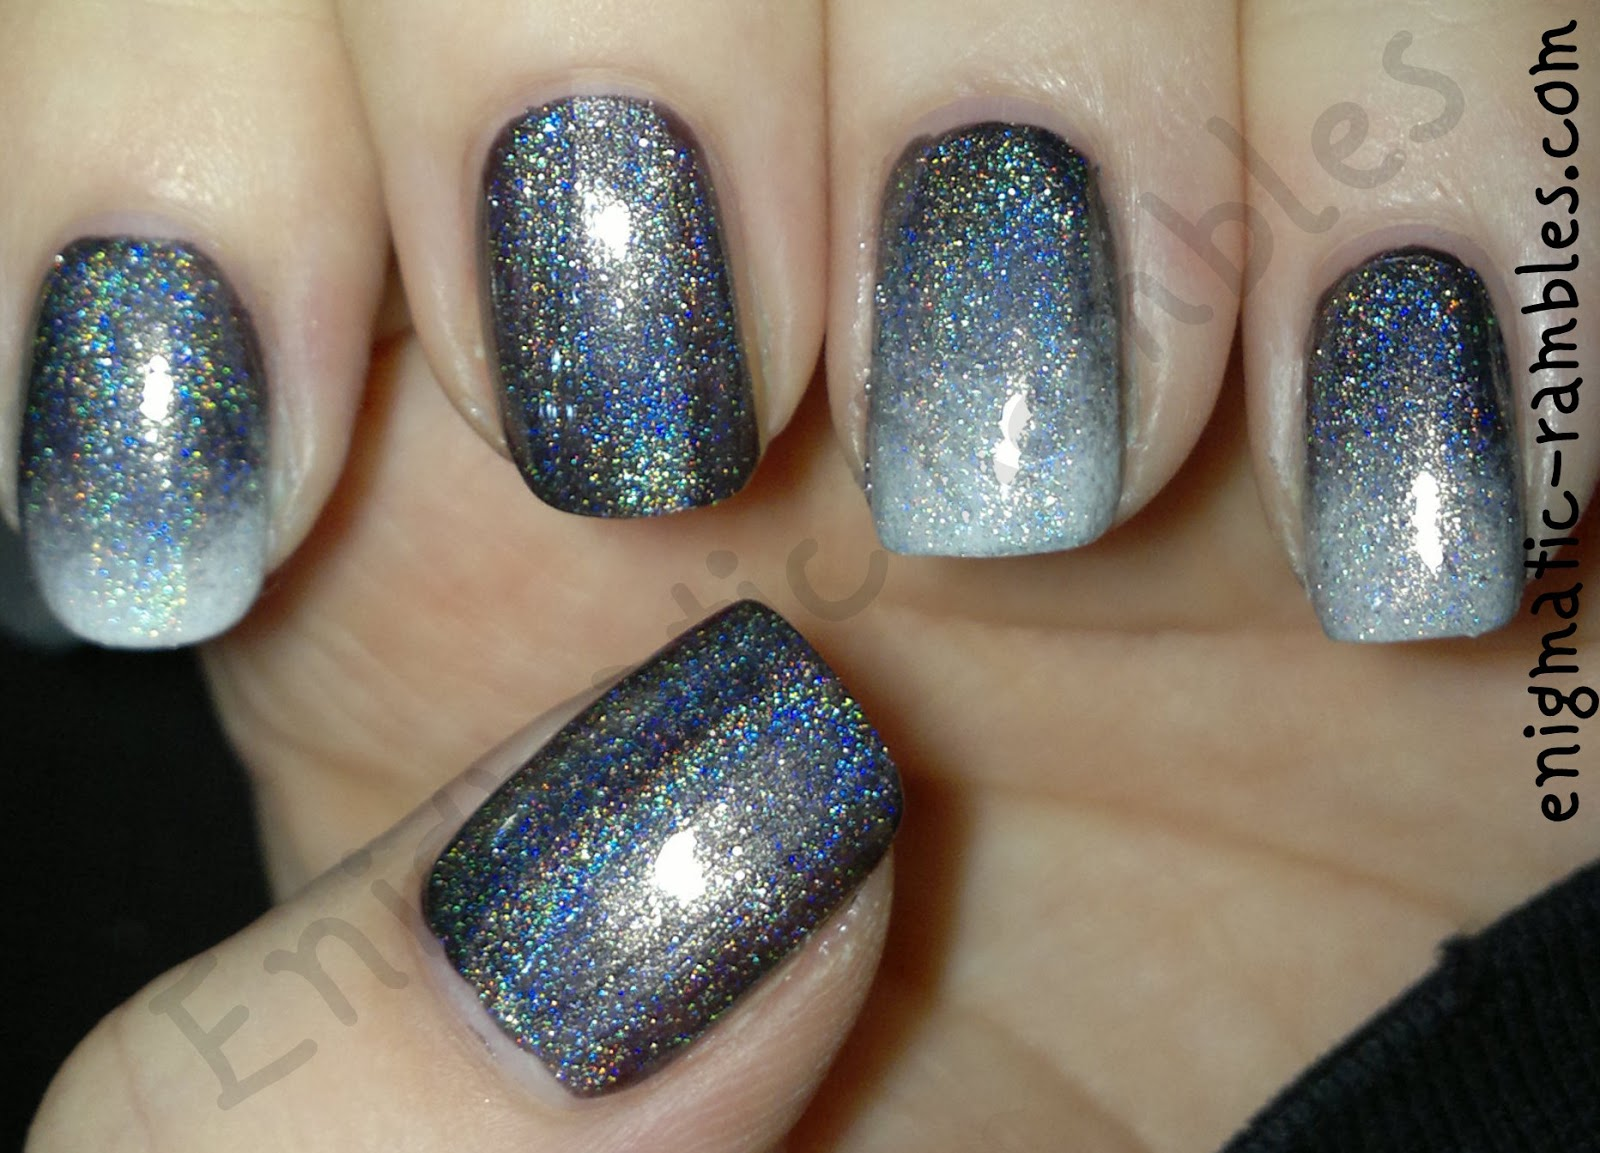 HITS-Hefesto-Holo-holographic-top-coat-revlon-steel-her-heart-sally-hansen-lavender-cloud-gradient